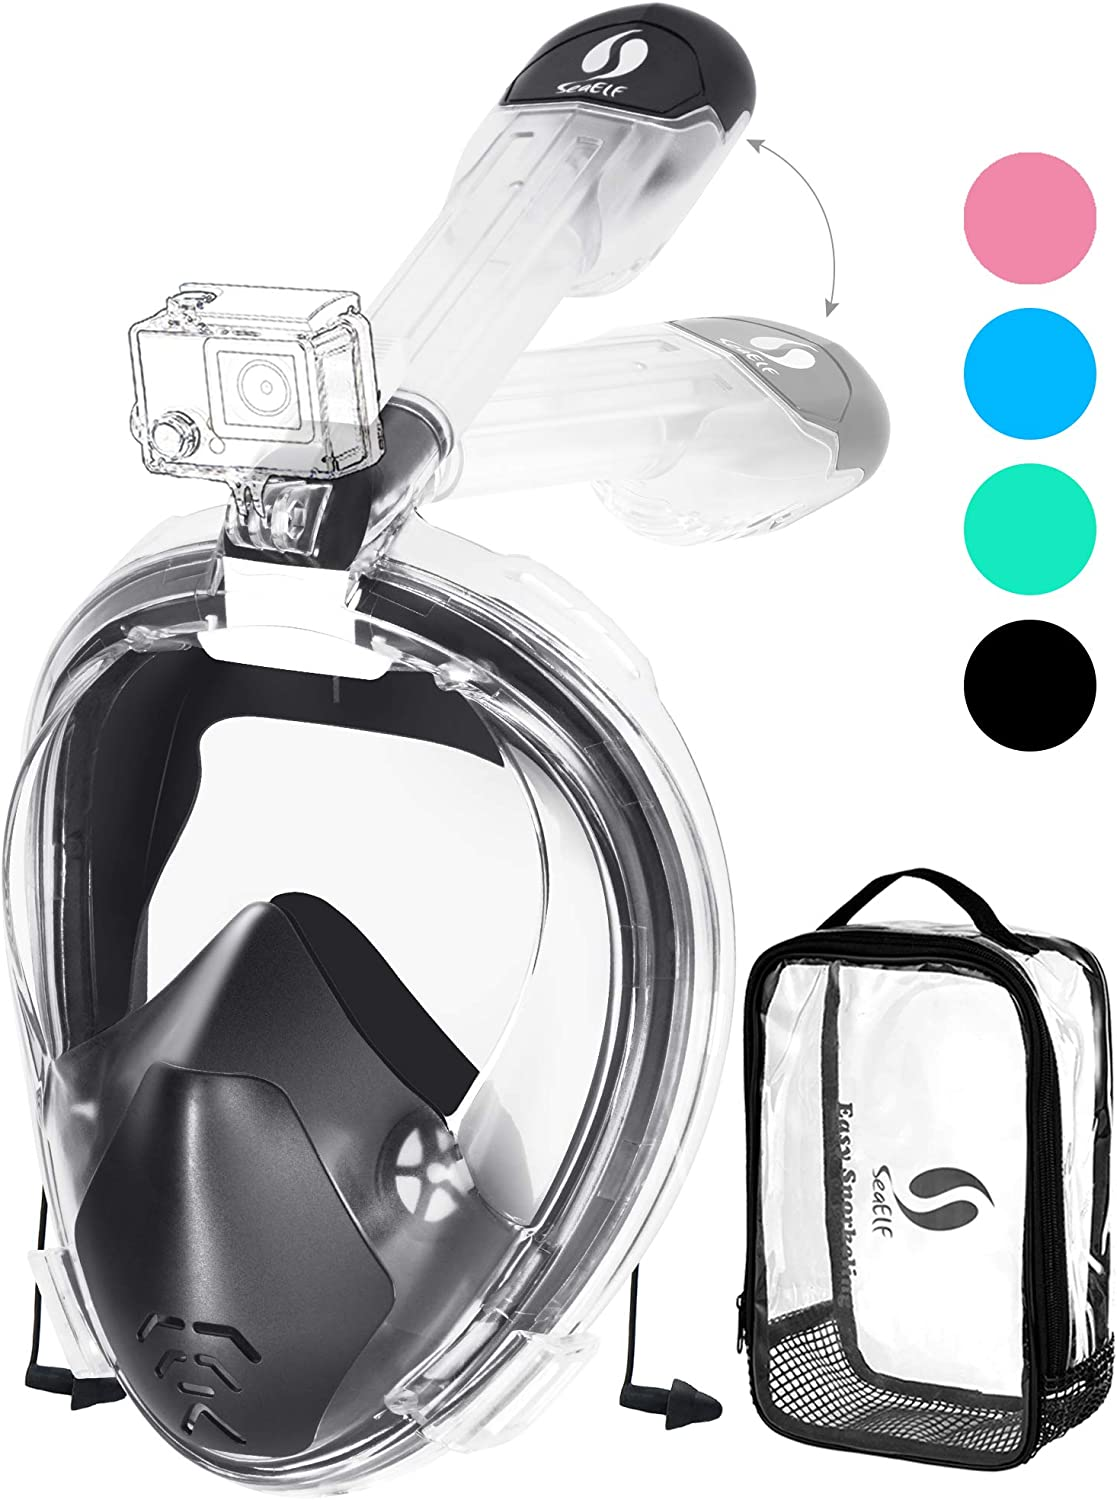 Full Face Snorkel Mask Easybreath Foldable Anti-UV Ear Equalizer 180° Panoramic Seaview Anti-Leak Anti-Fog with Camera Mount Earplugs Portable Bag for Adult Youth Kid